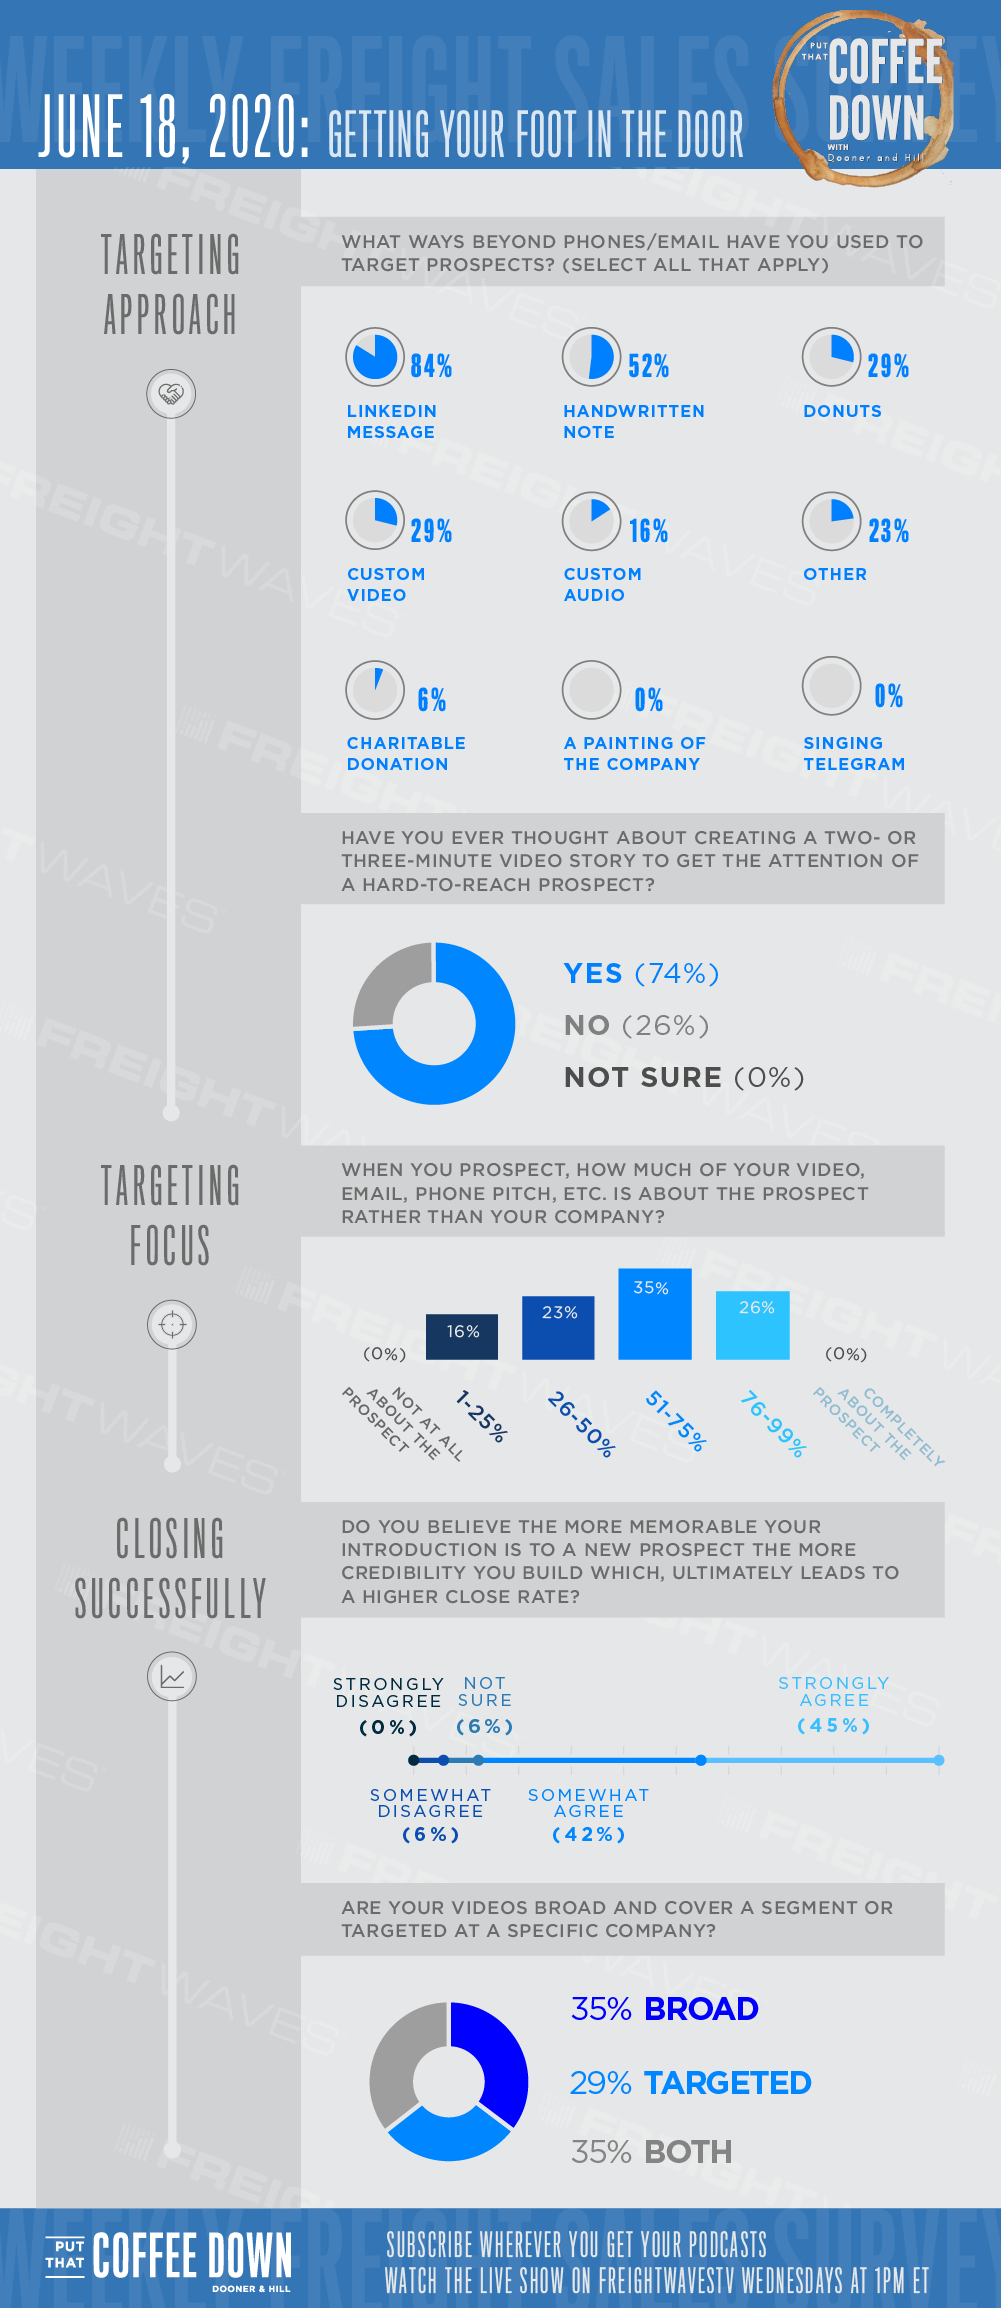 Put That Coffee Down Sales Survey Infographic